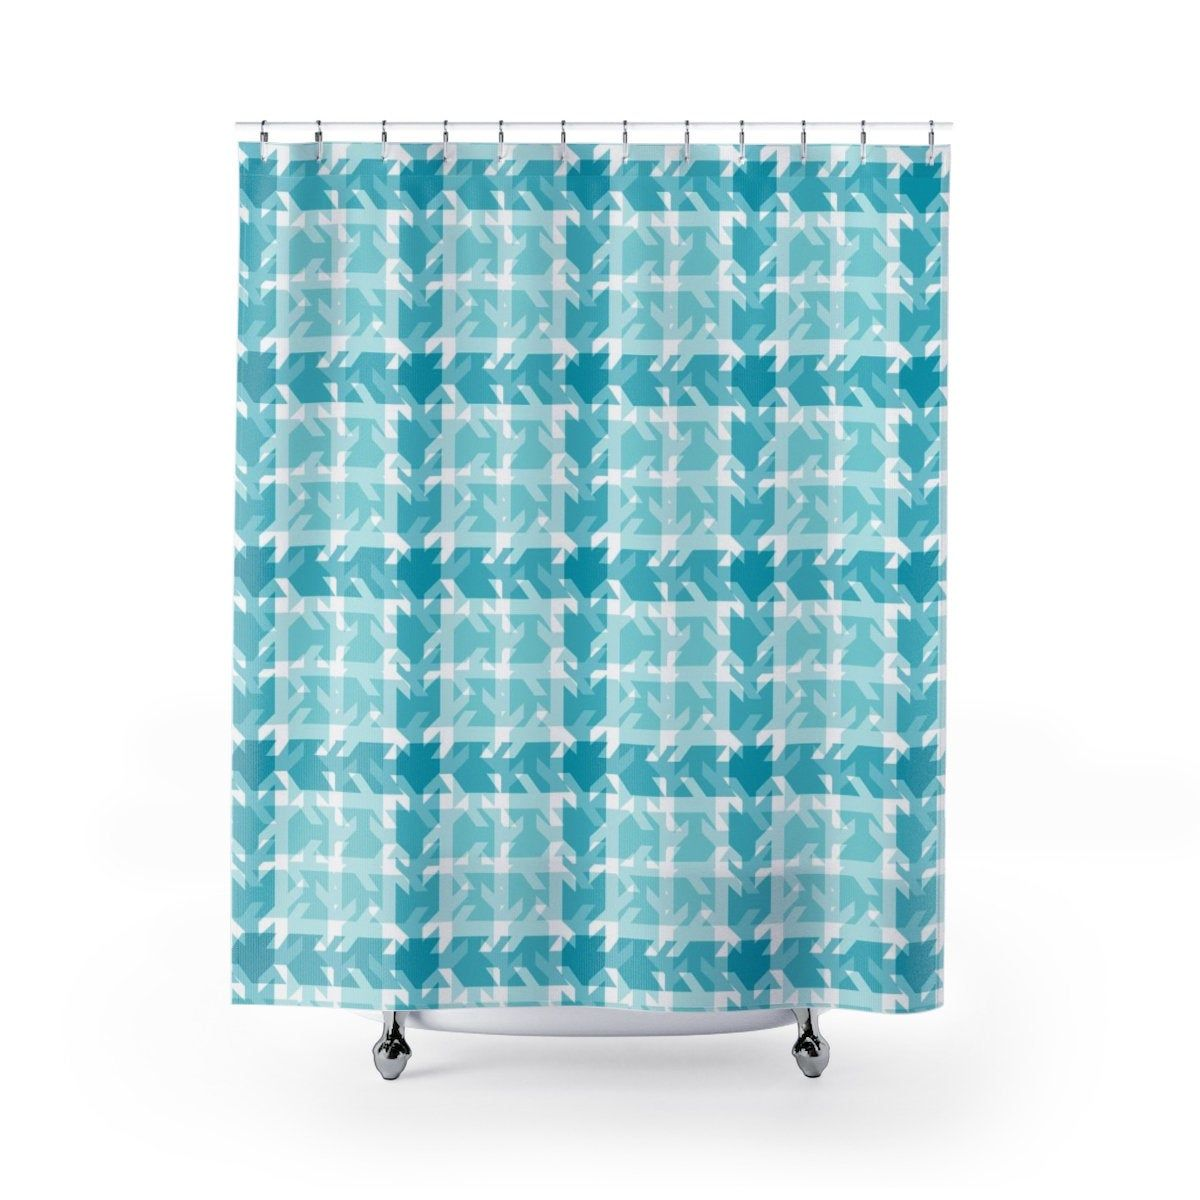 Shower Curtains Turquoise Teal Blue Stamped Patchwork Plaid Girls